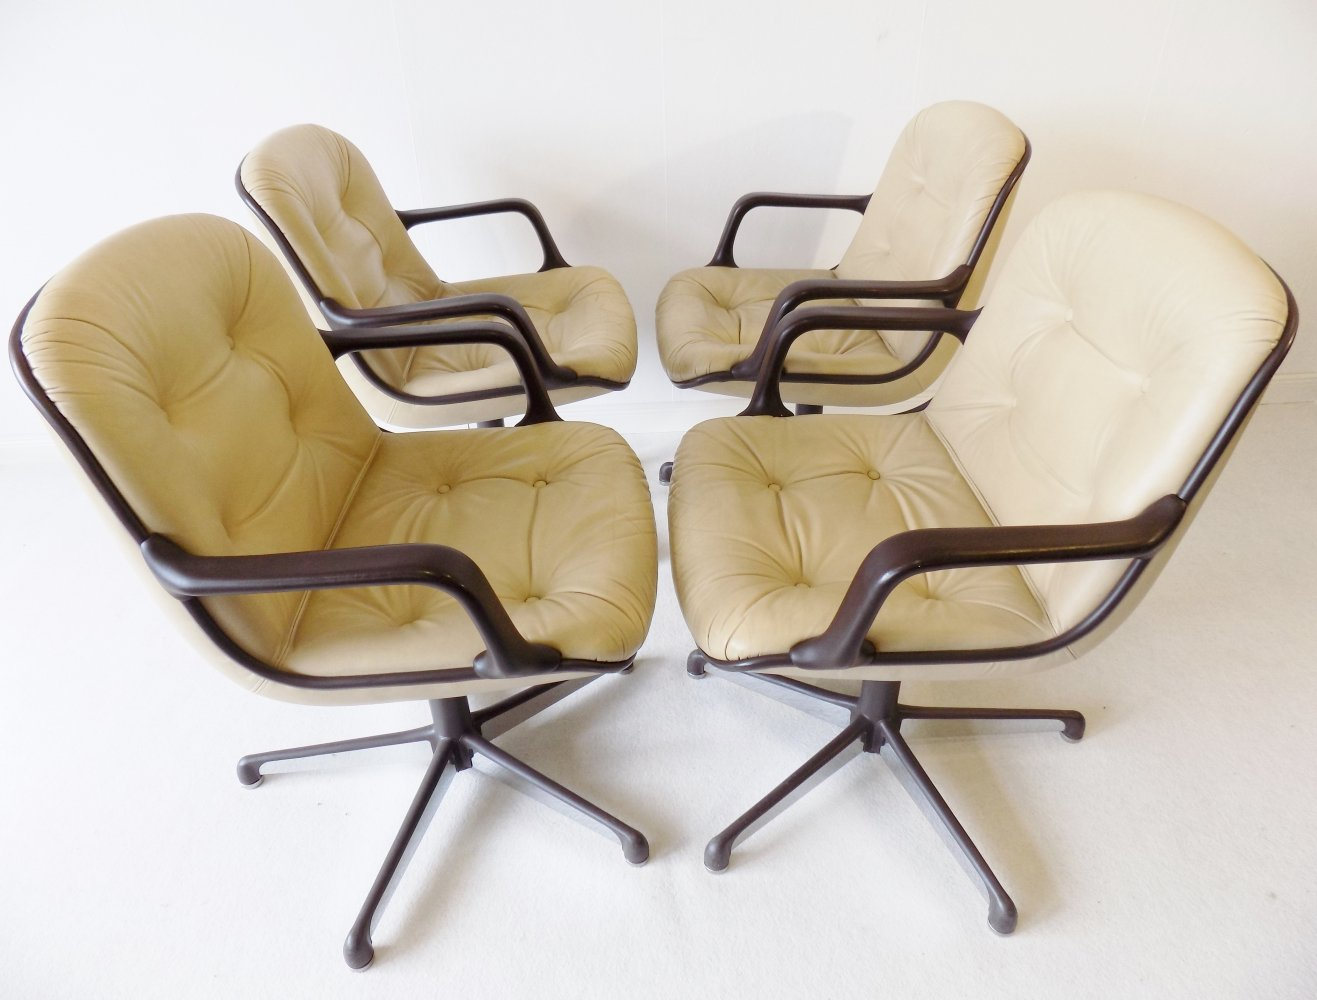 Comforto set of 4 executive leather dining/office chairs by Charles Pollock